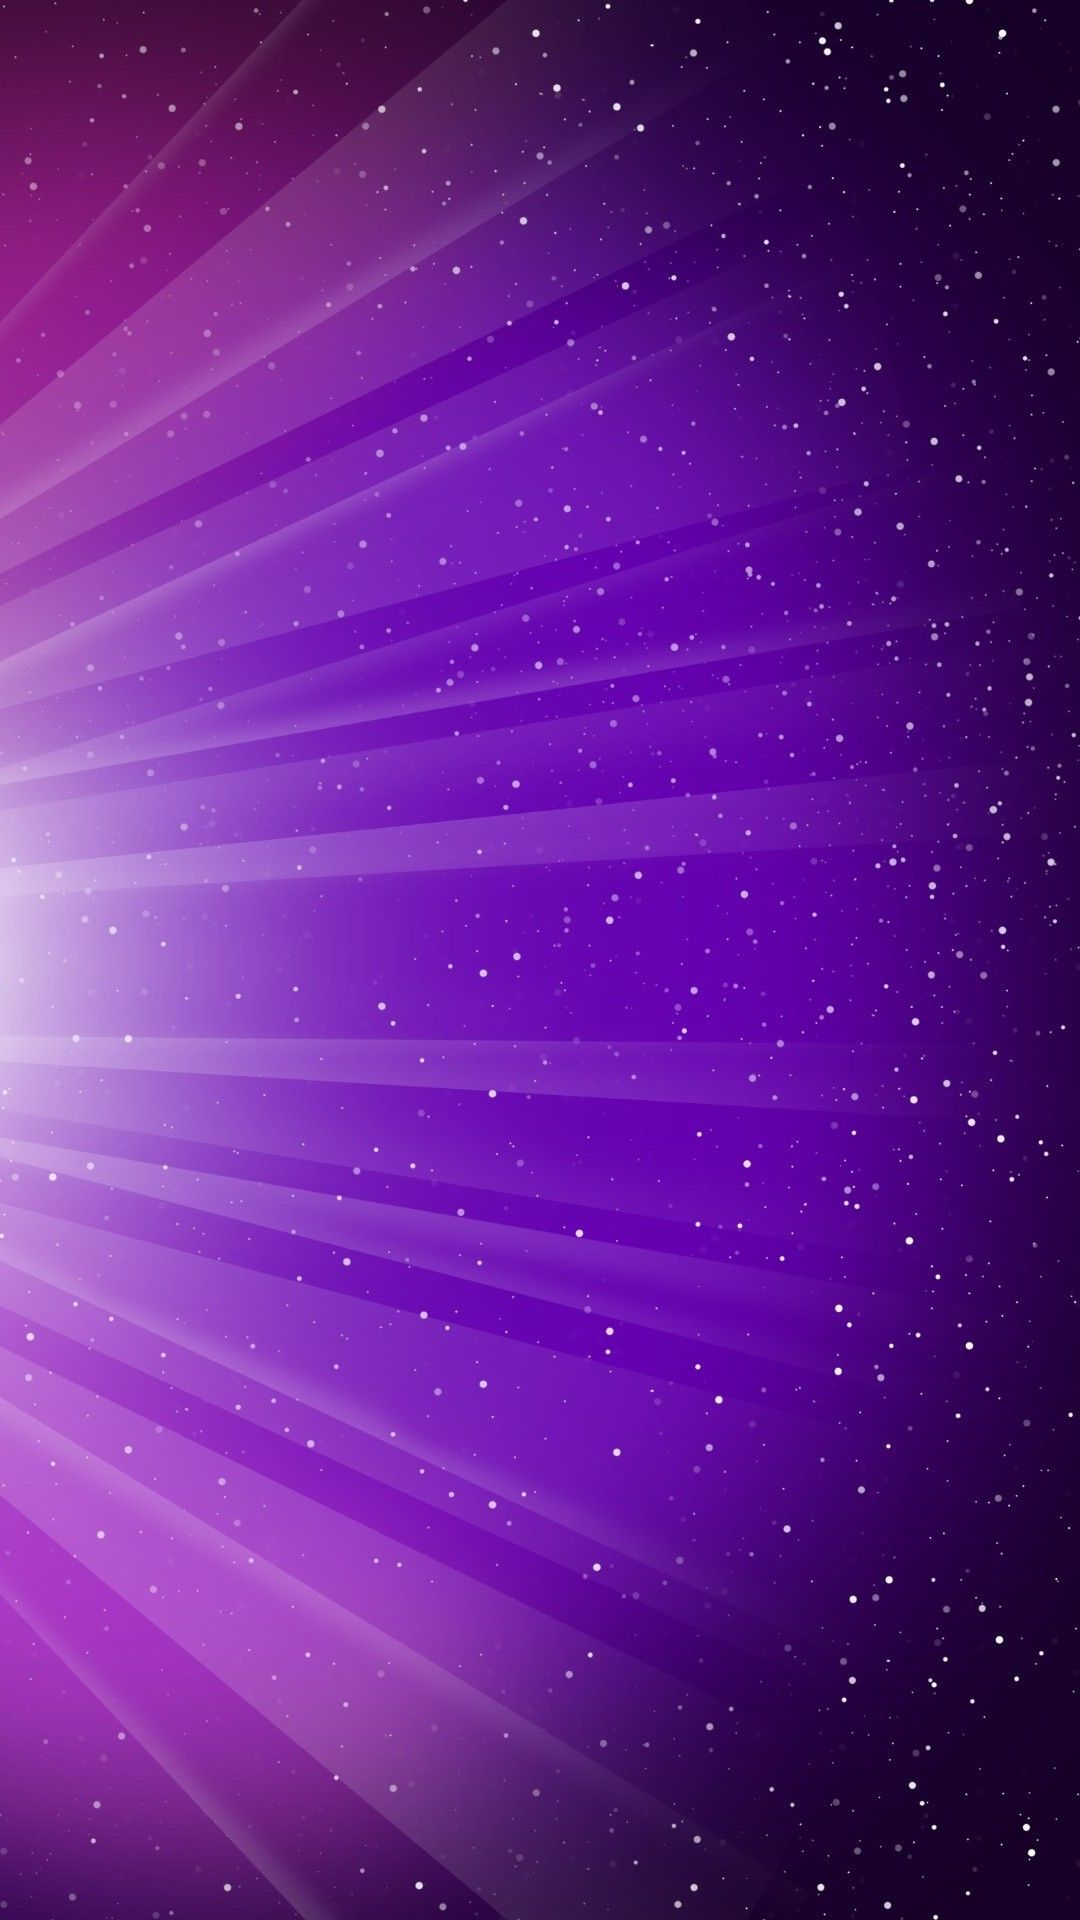 purple background for mobile fondos de pantalla iphone